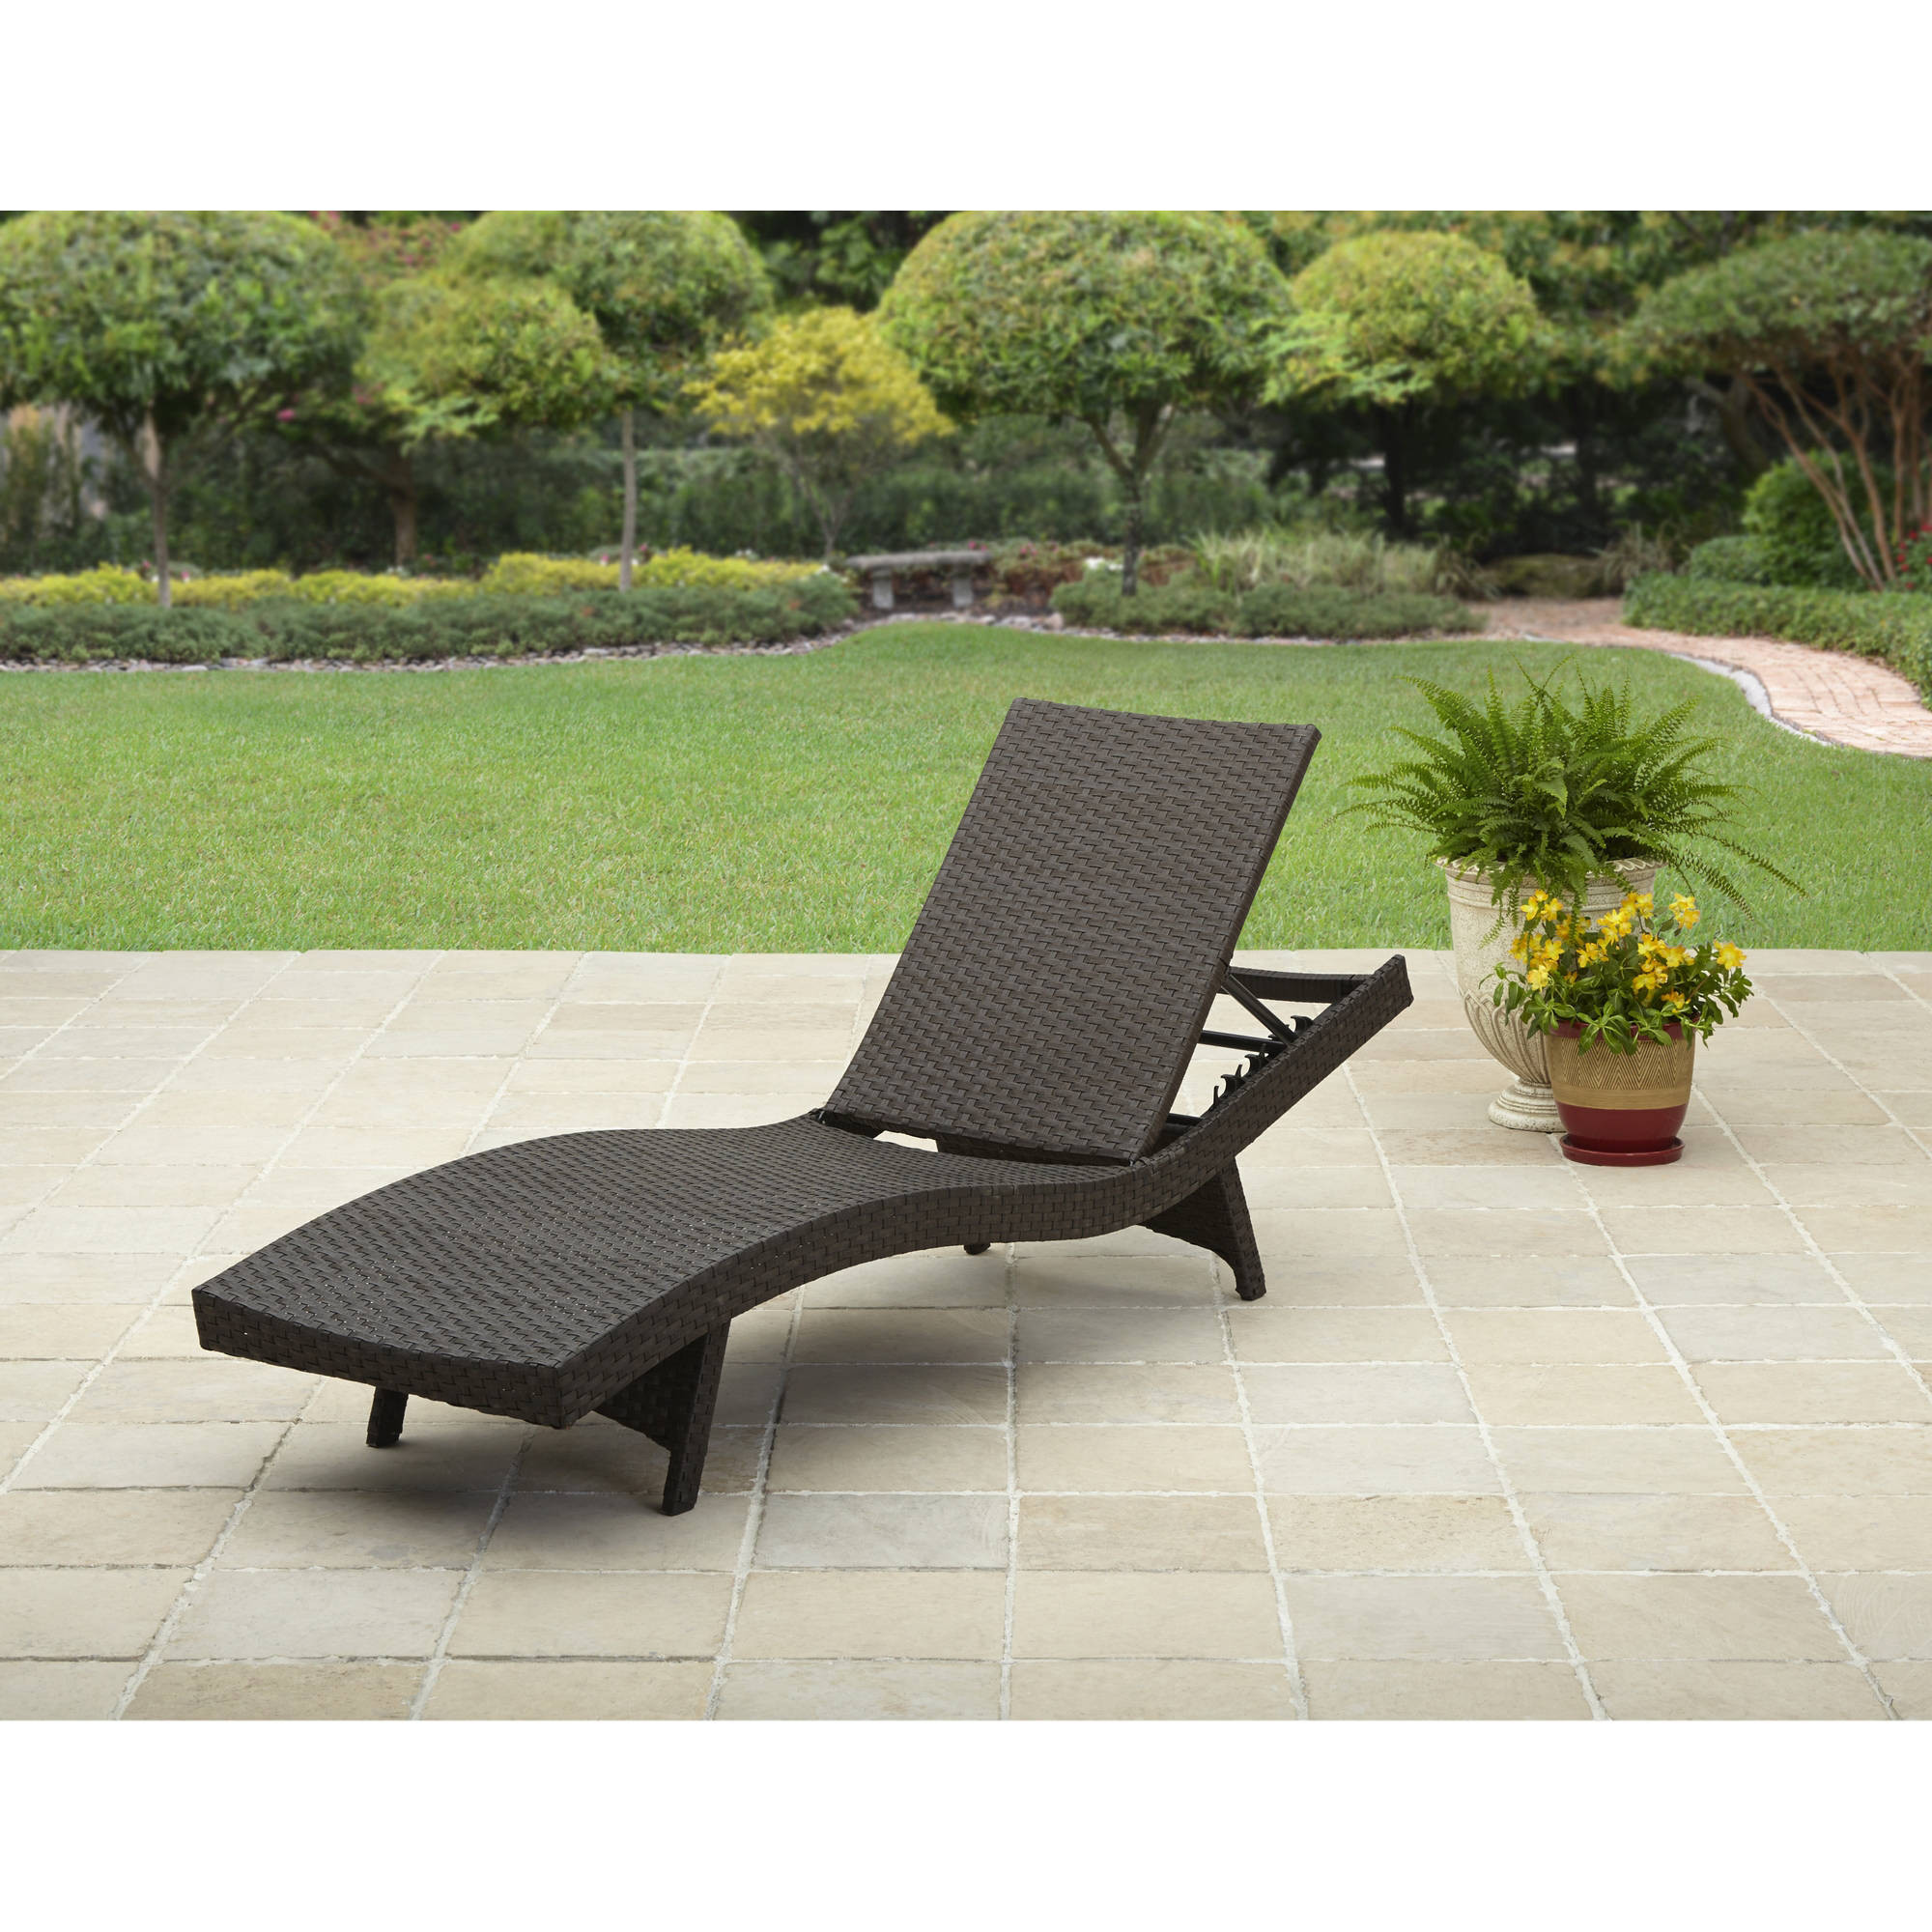 Best ideas about Outdoor Chairs Walmart . Save or Pin Furniture Inspiring Folding Chair Design Ideas By Lawn Now.